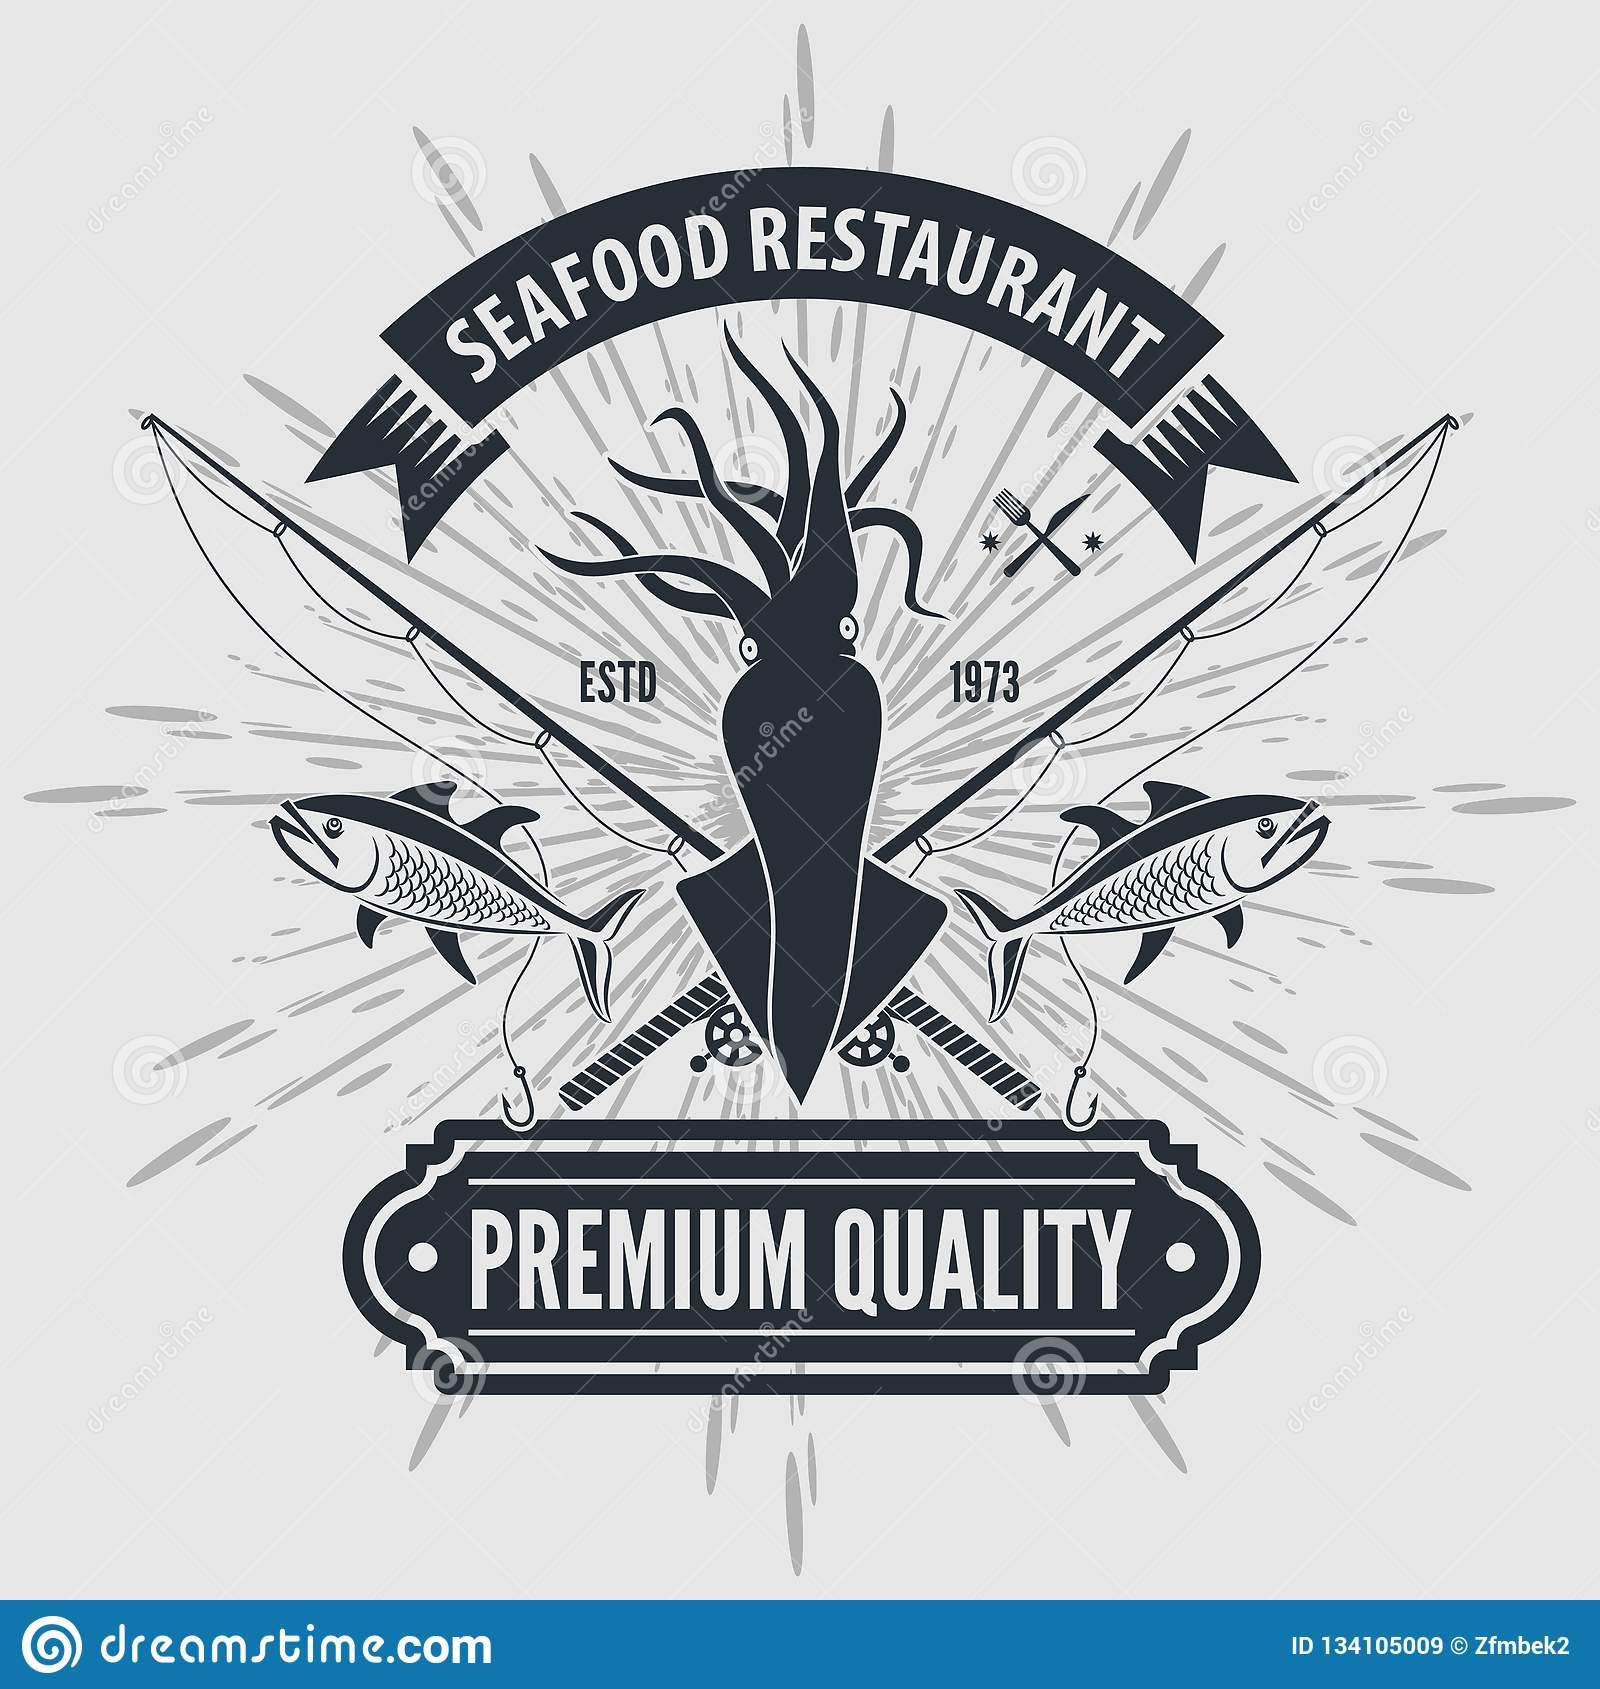 Seafood Restaurant Logo With Squid And Fishing Rods Vintage